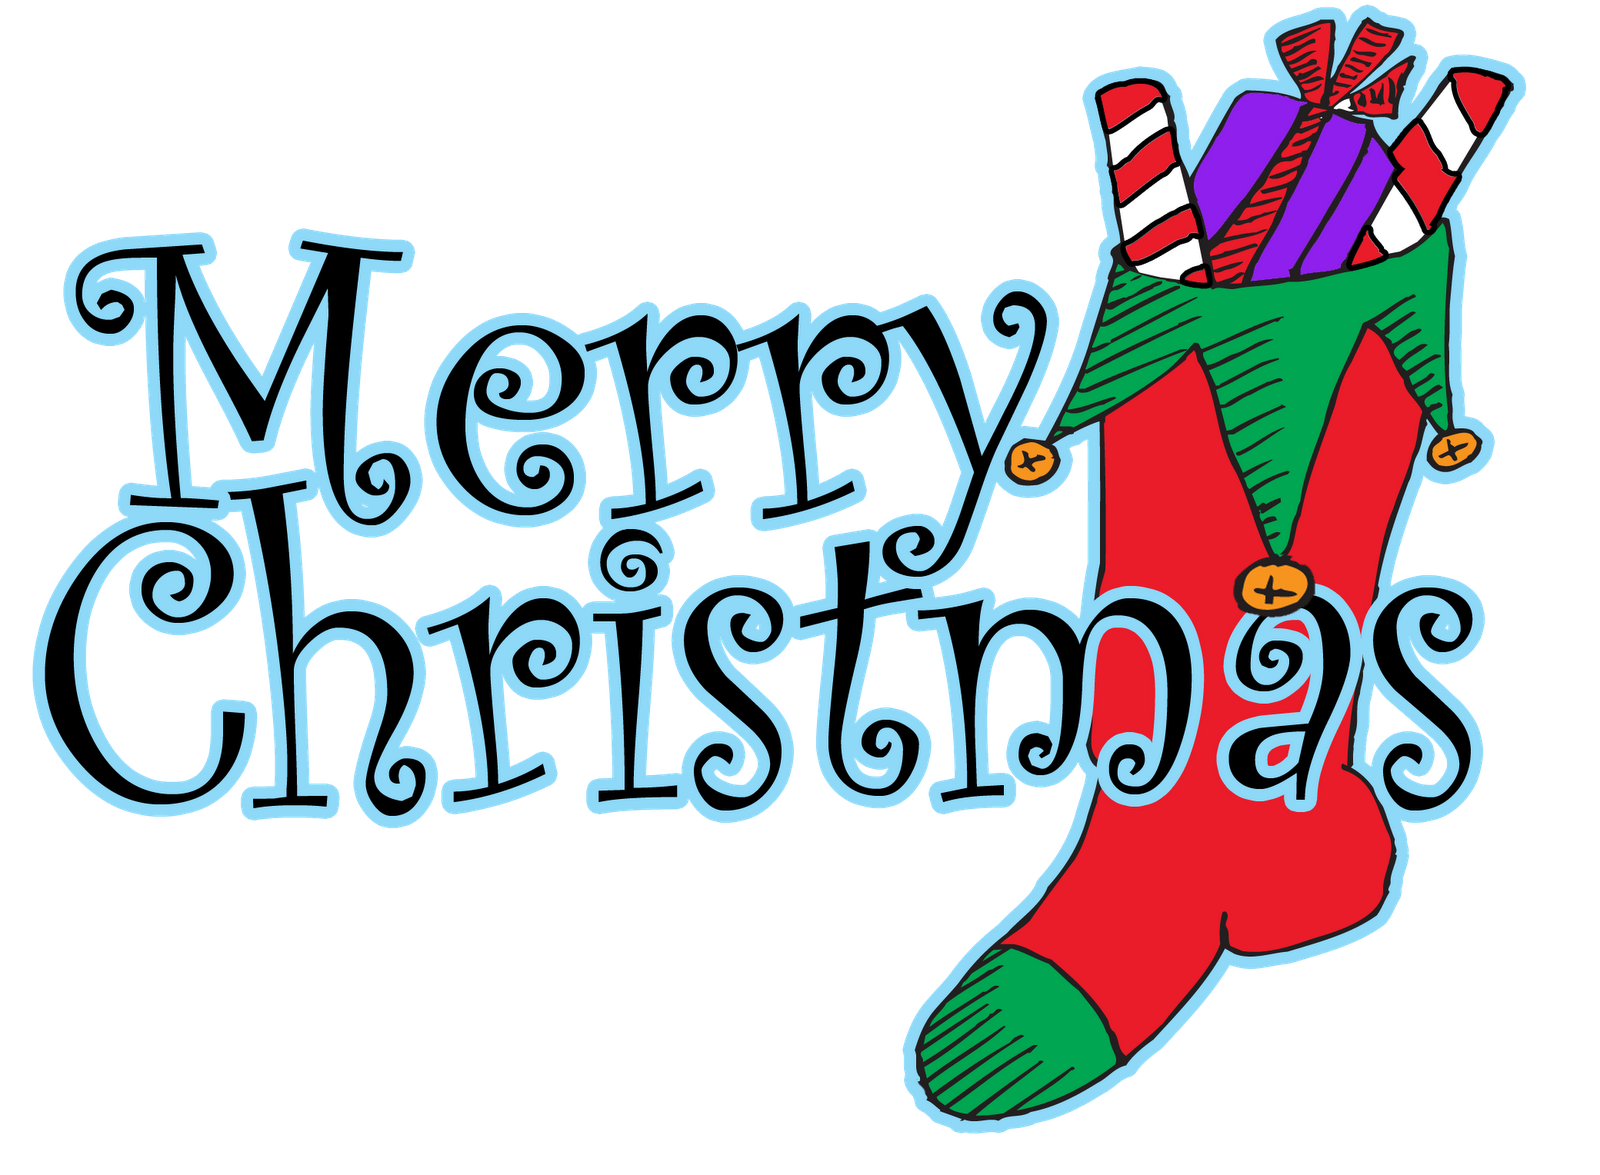 Merry Christmas Clip Art Words | HD Wallpaper And Download Free - Family Day PNG HD Free